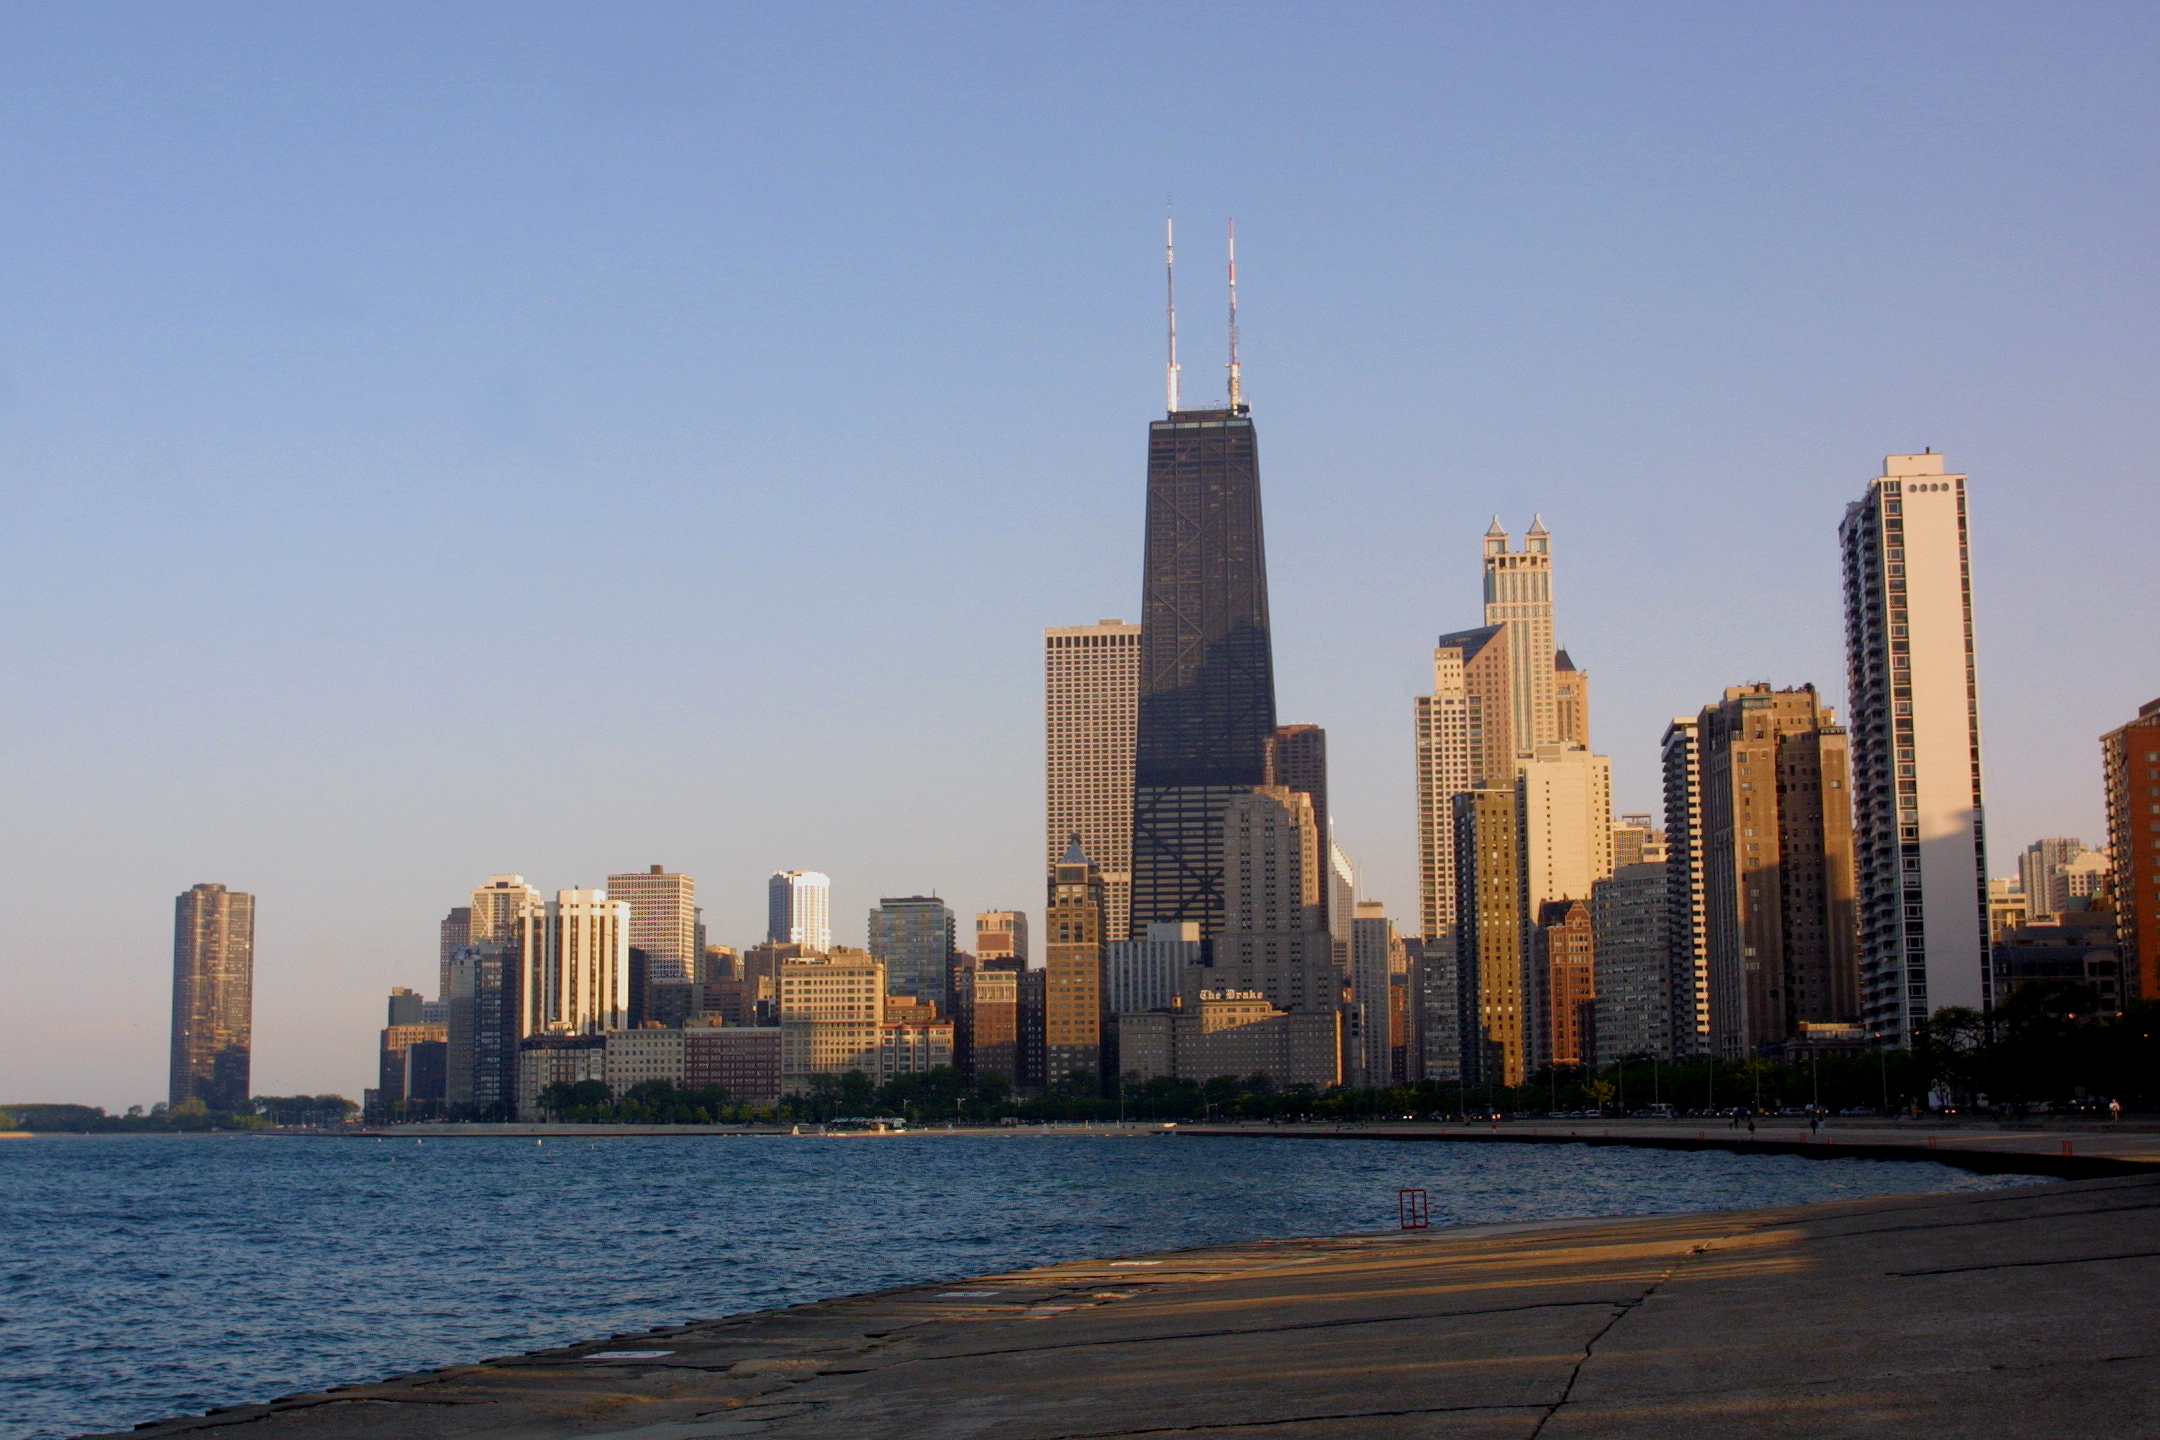 Chicago's skyline from the lakefront